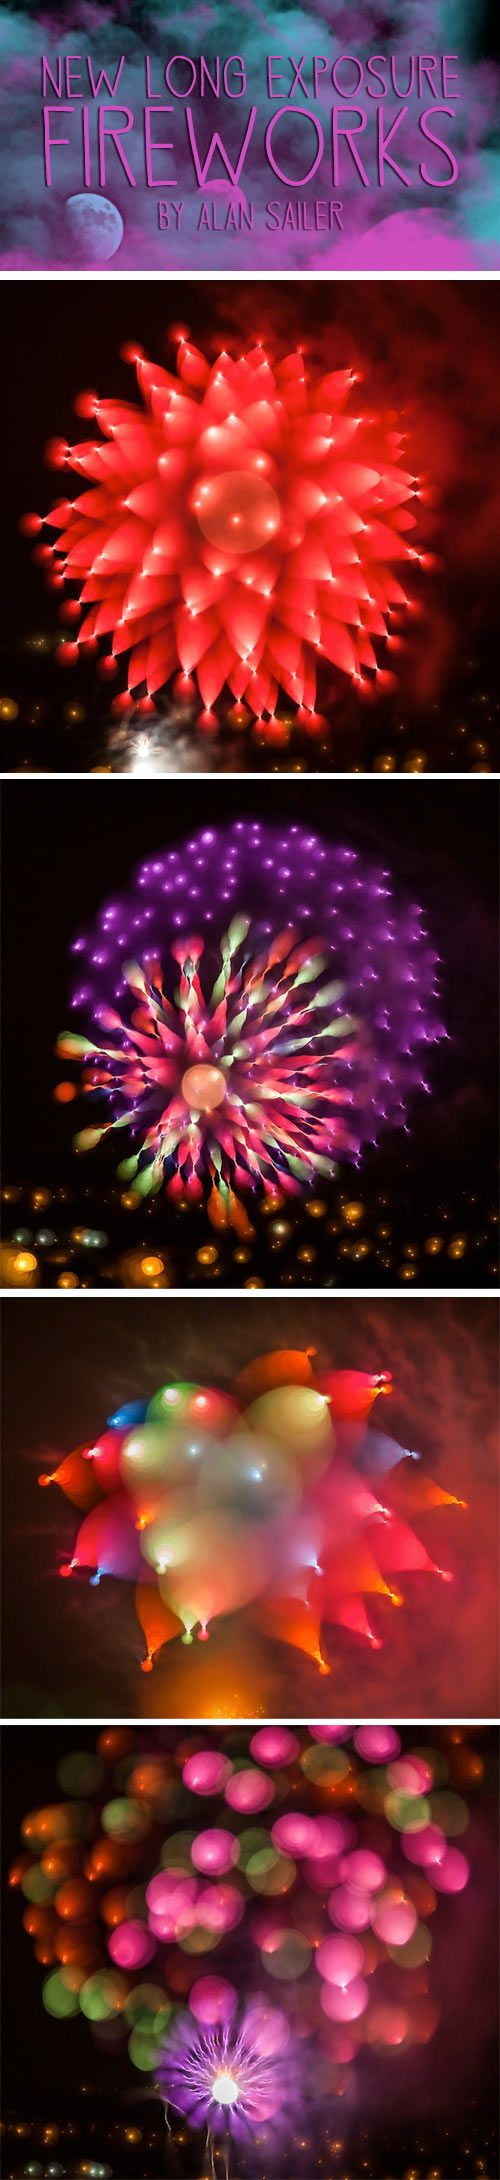 Long exposure fireworks...